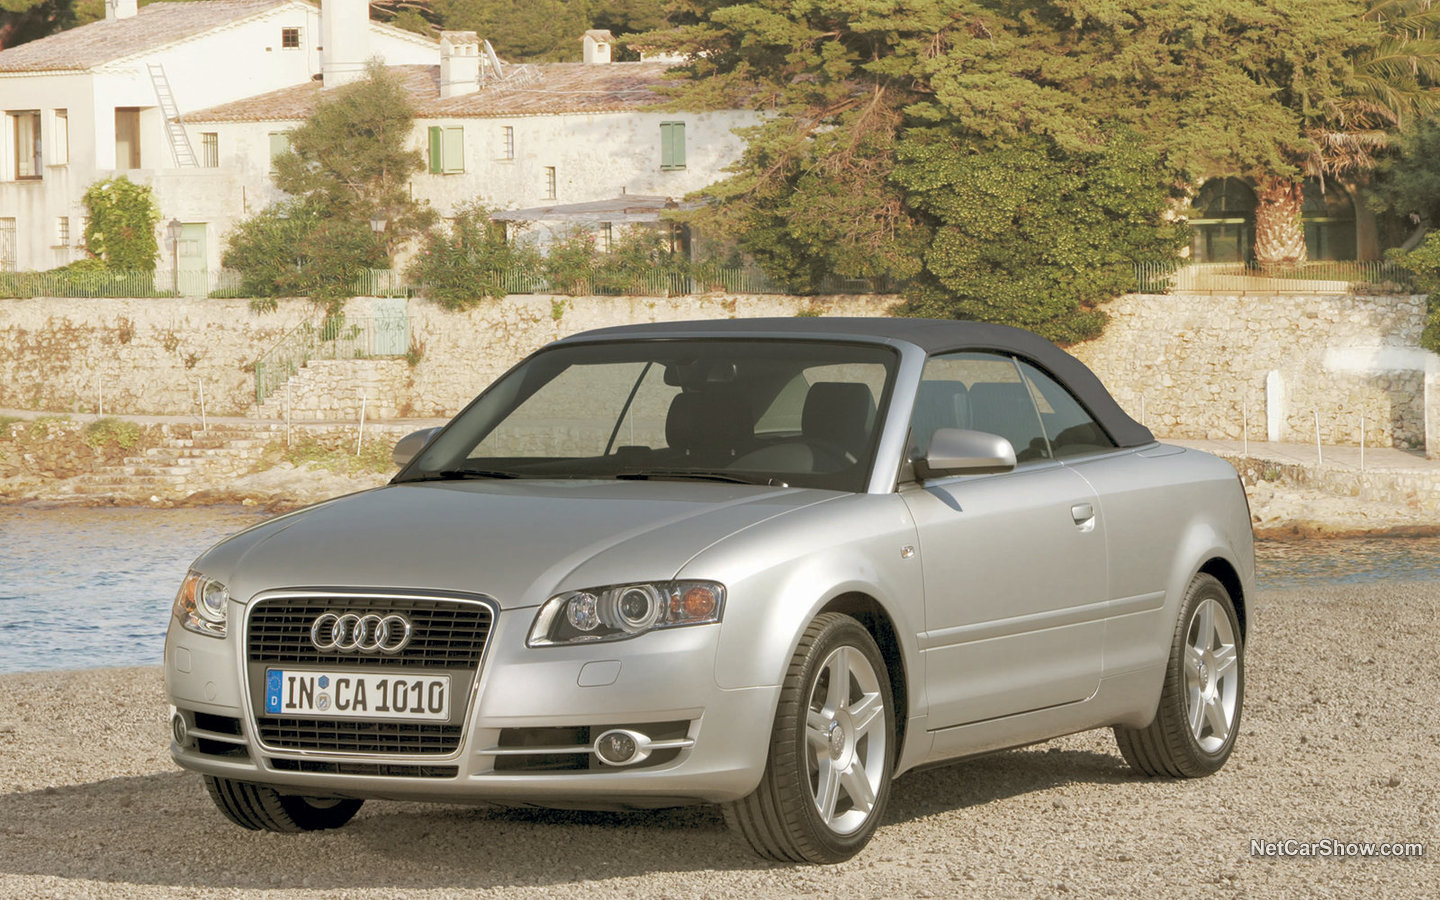 Audi A4 Cabriolet 2006 6f9be121